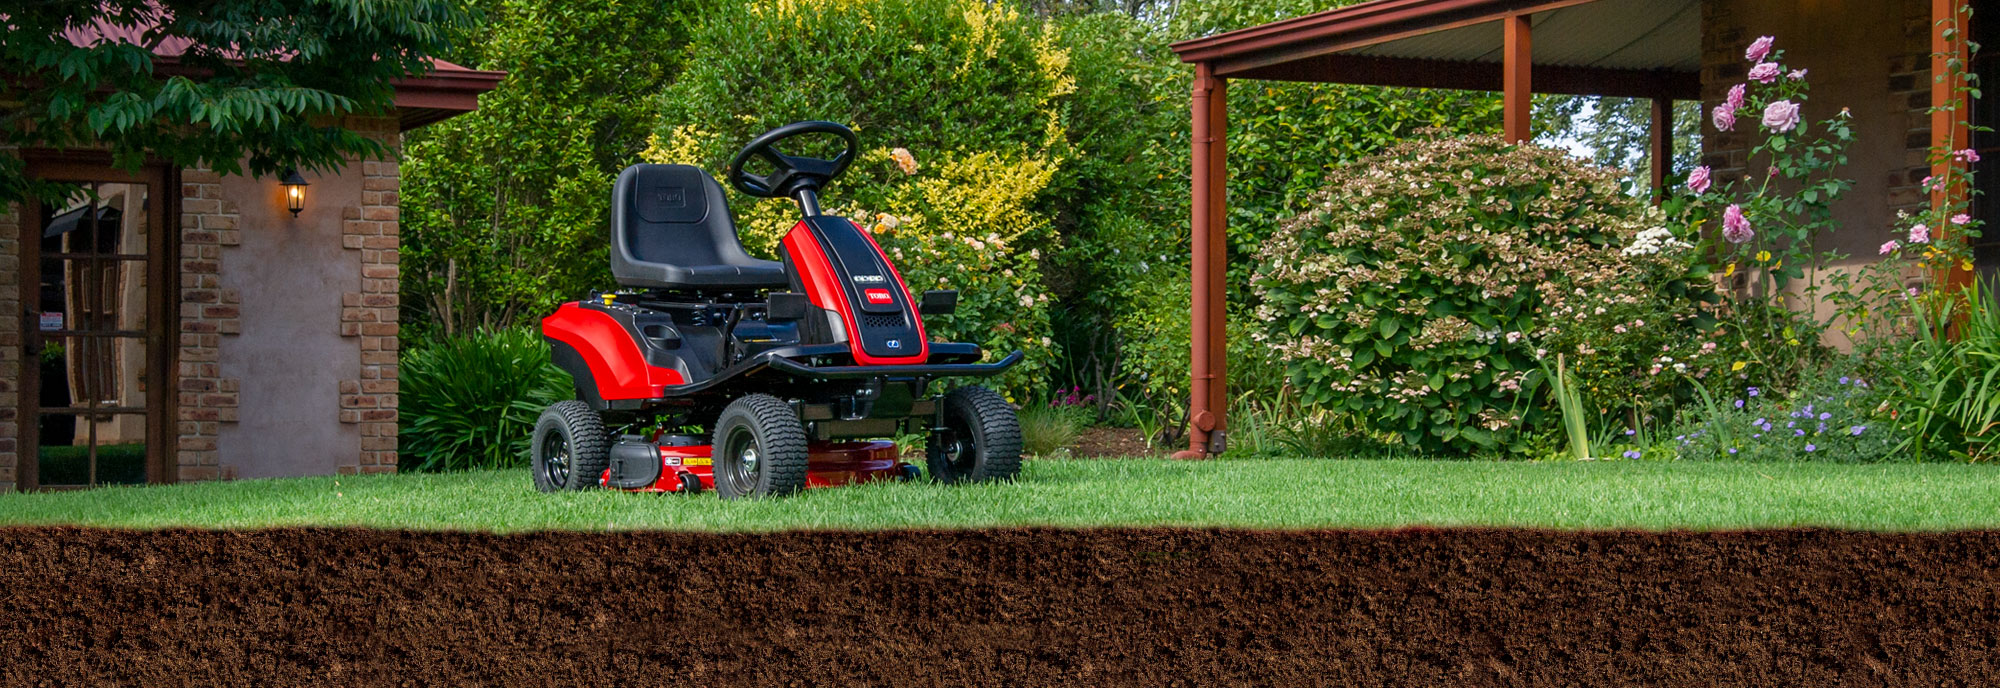 All new E Series battery powered ride-on mower